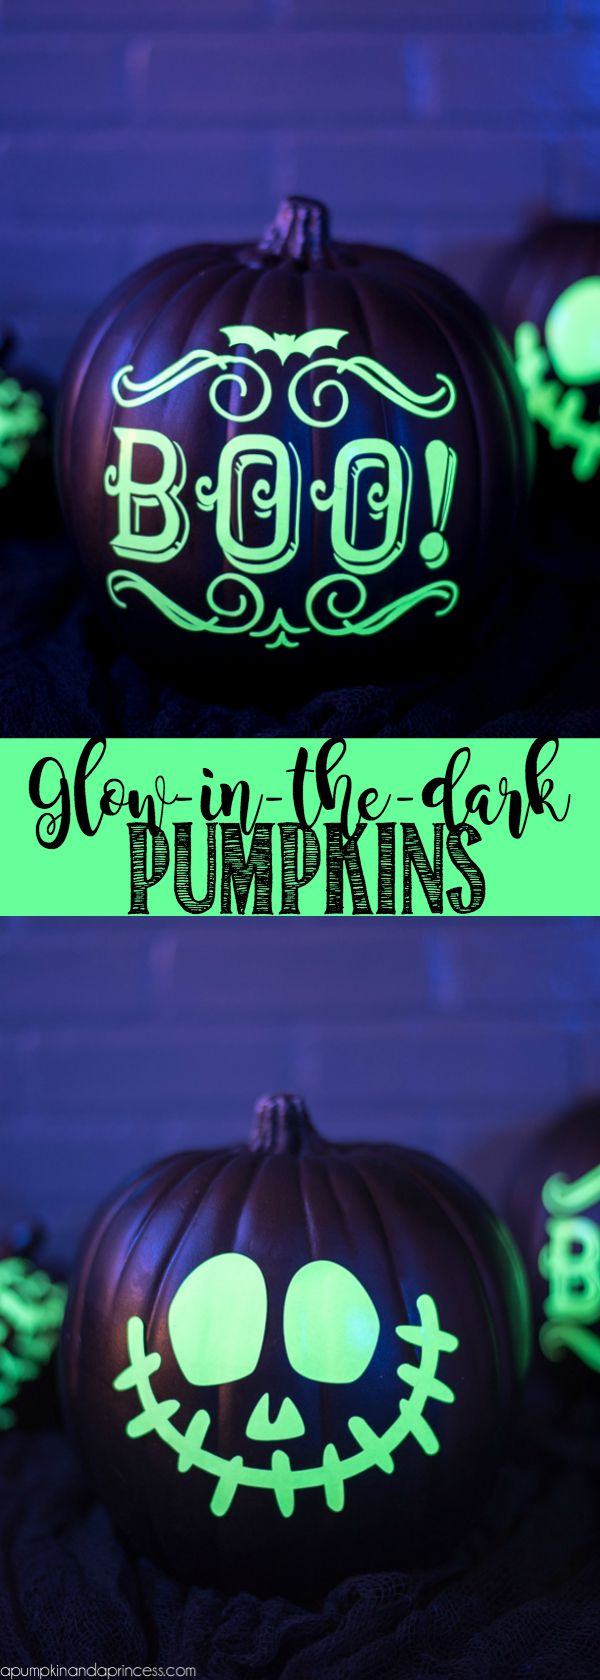 DIY Glow-in-the-dark pumpkins – welcome guests and trick or treaters with glow…